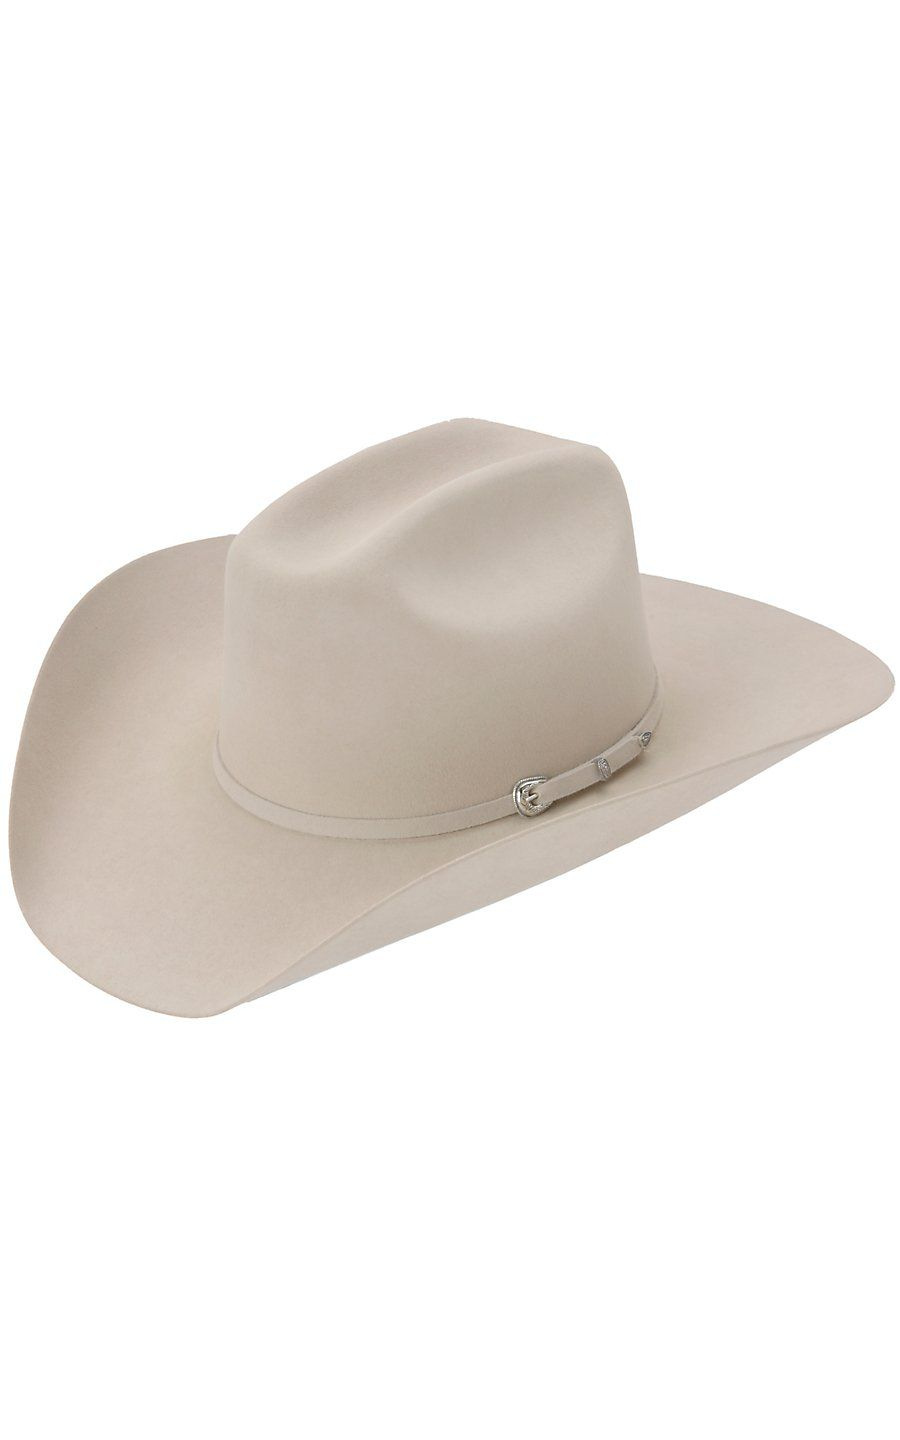 Cavender s® 5X Ranch Collection Silverbelly Felt Cowboy Hat  31a2efee4c3b